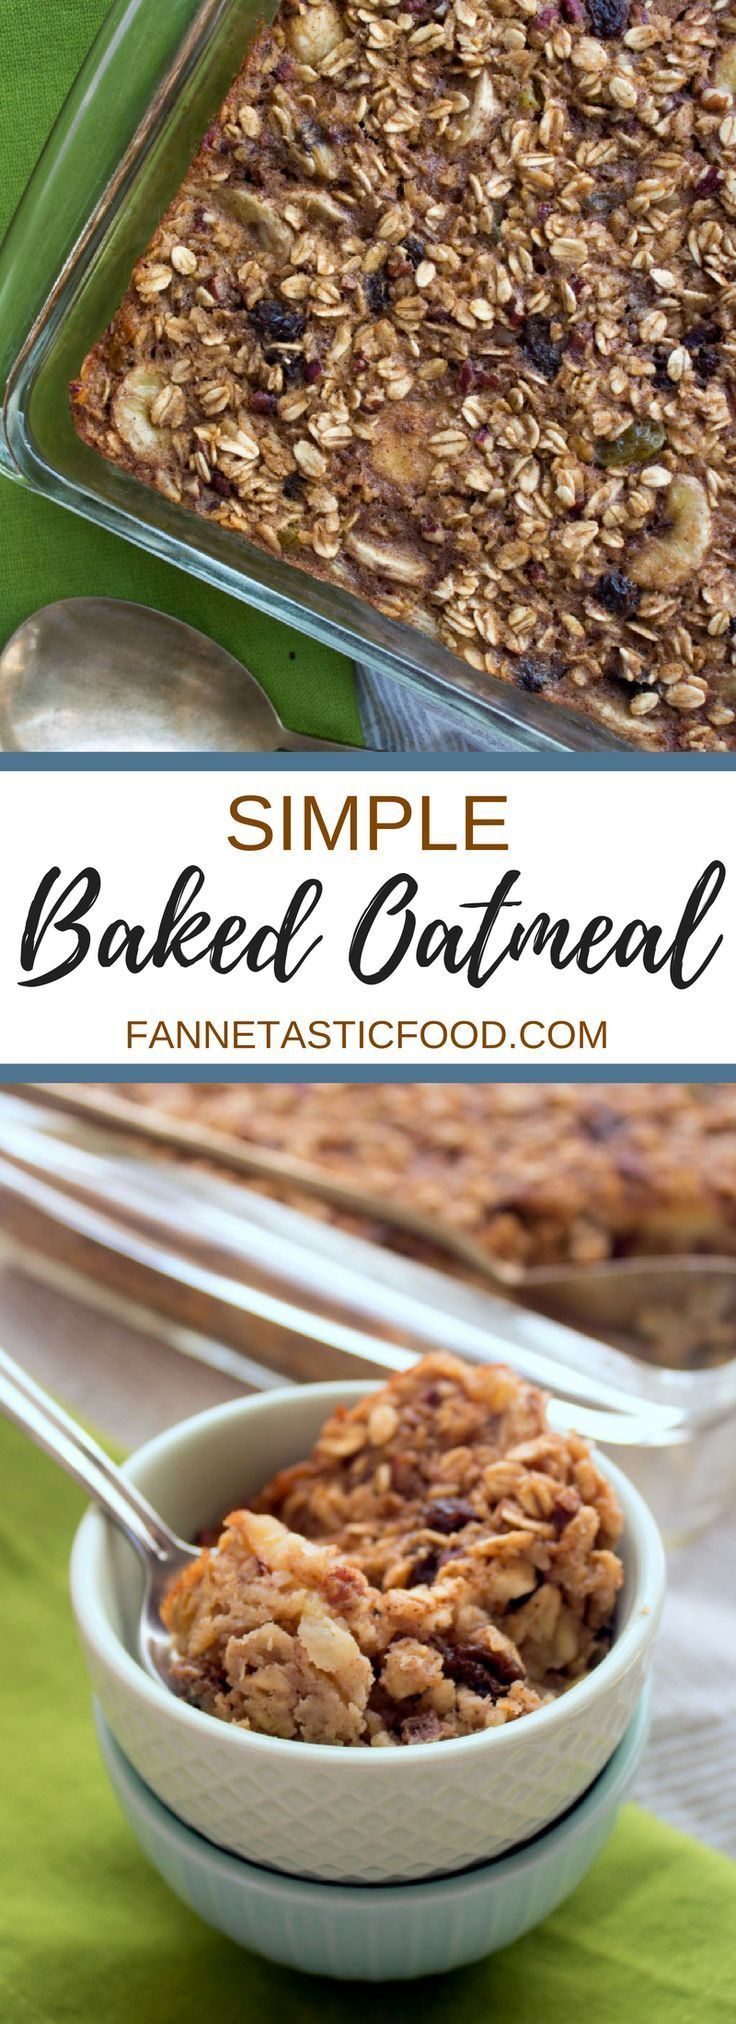 Simple Baked Oatmeal Recipe | Easy and Healthy -   18 healthy recipes Simple brunch food ideas